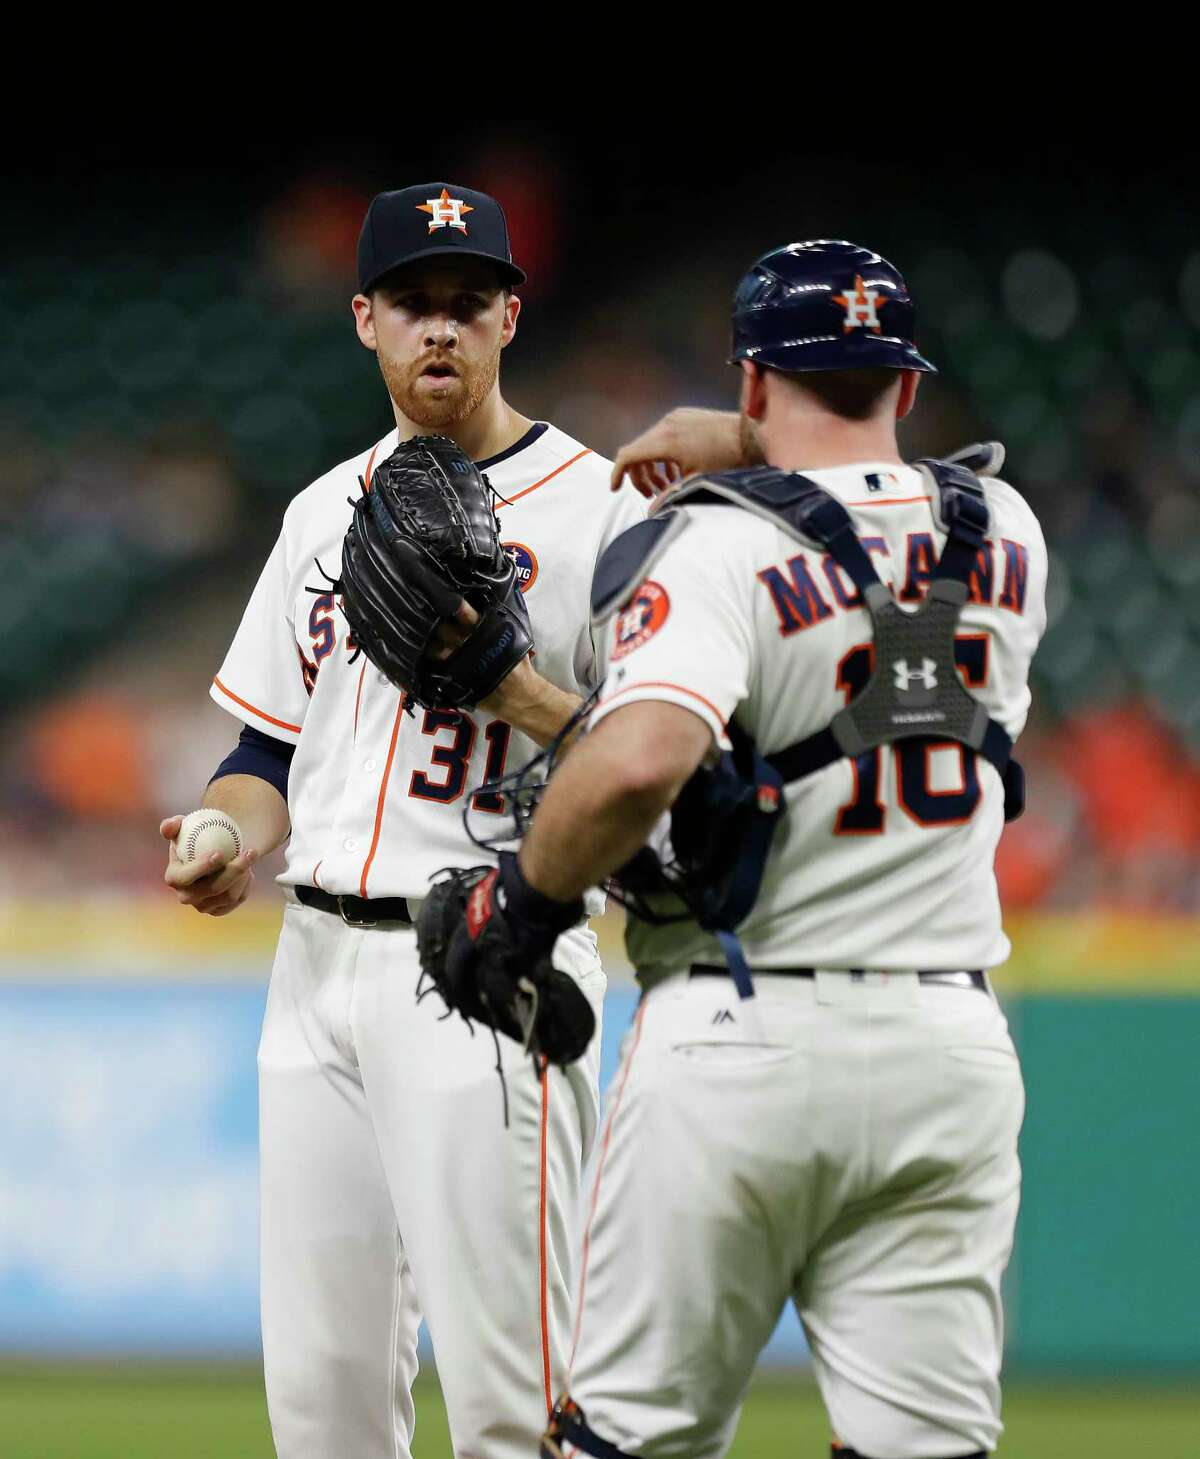 Houston Astros starting pitcher Collin McHugh (31) talks with catcher Brian McCann (16) between batters during the first inning of an MLB baseball game at Minute Maid Park, Tuesday, Sept. 19, 2017, in Houston.